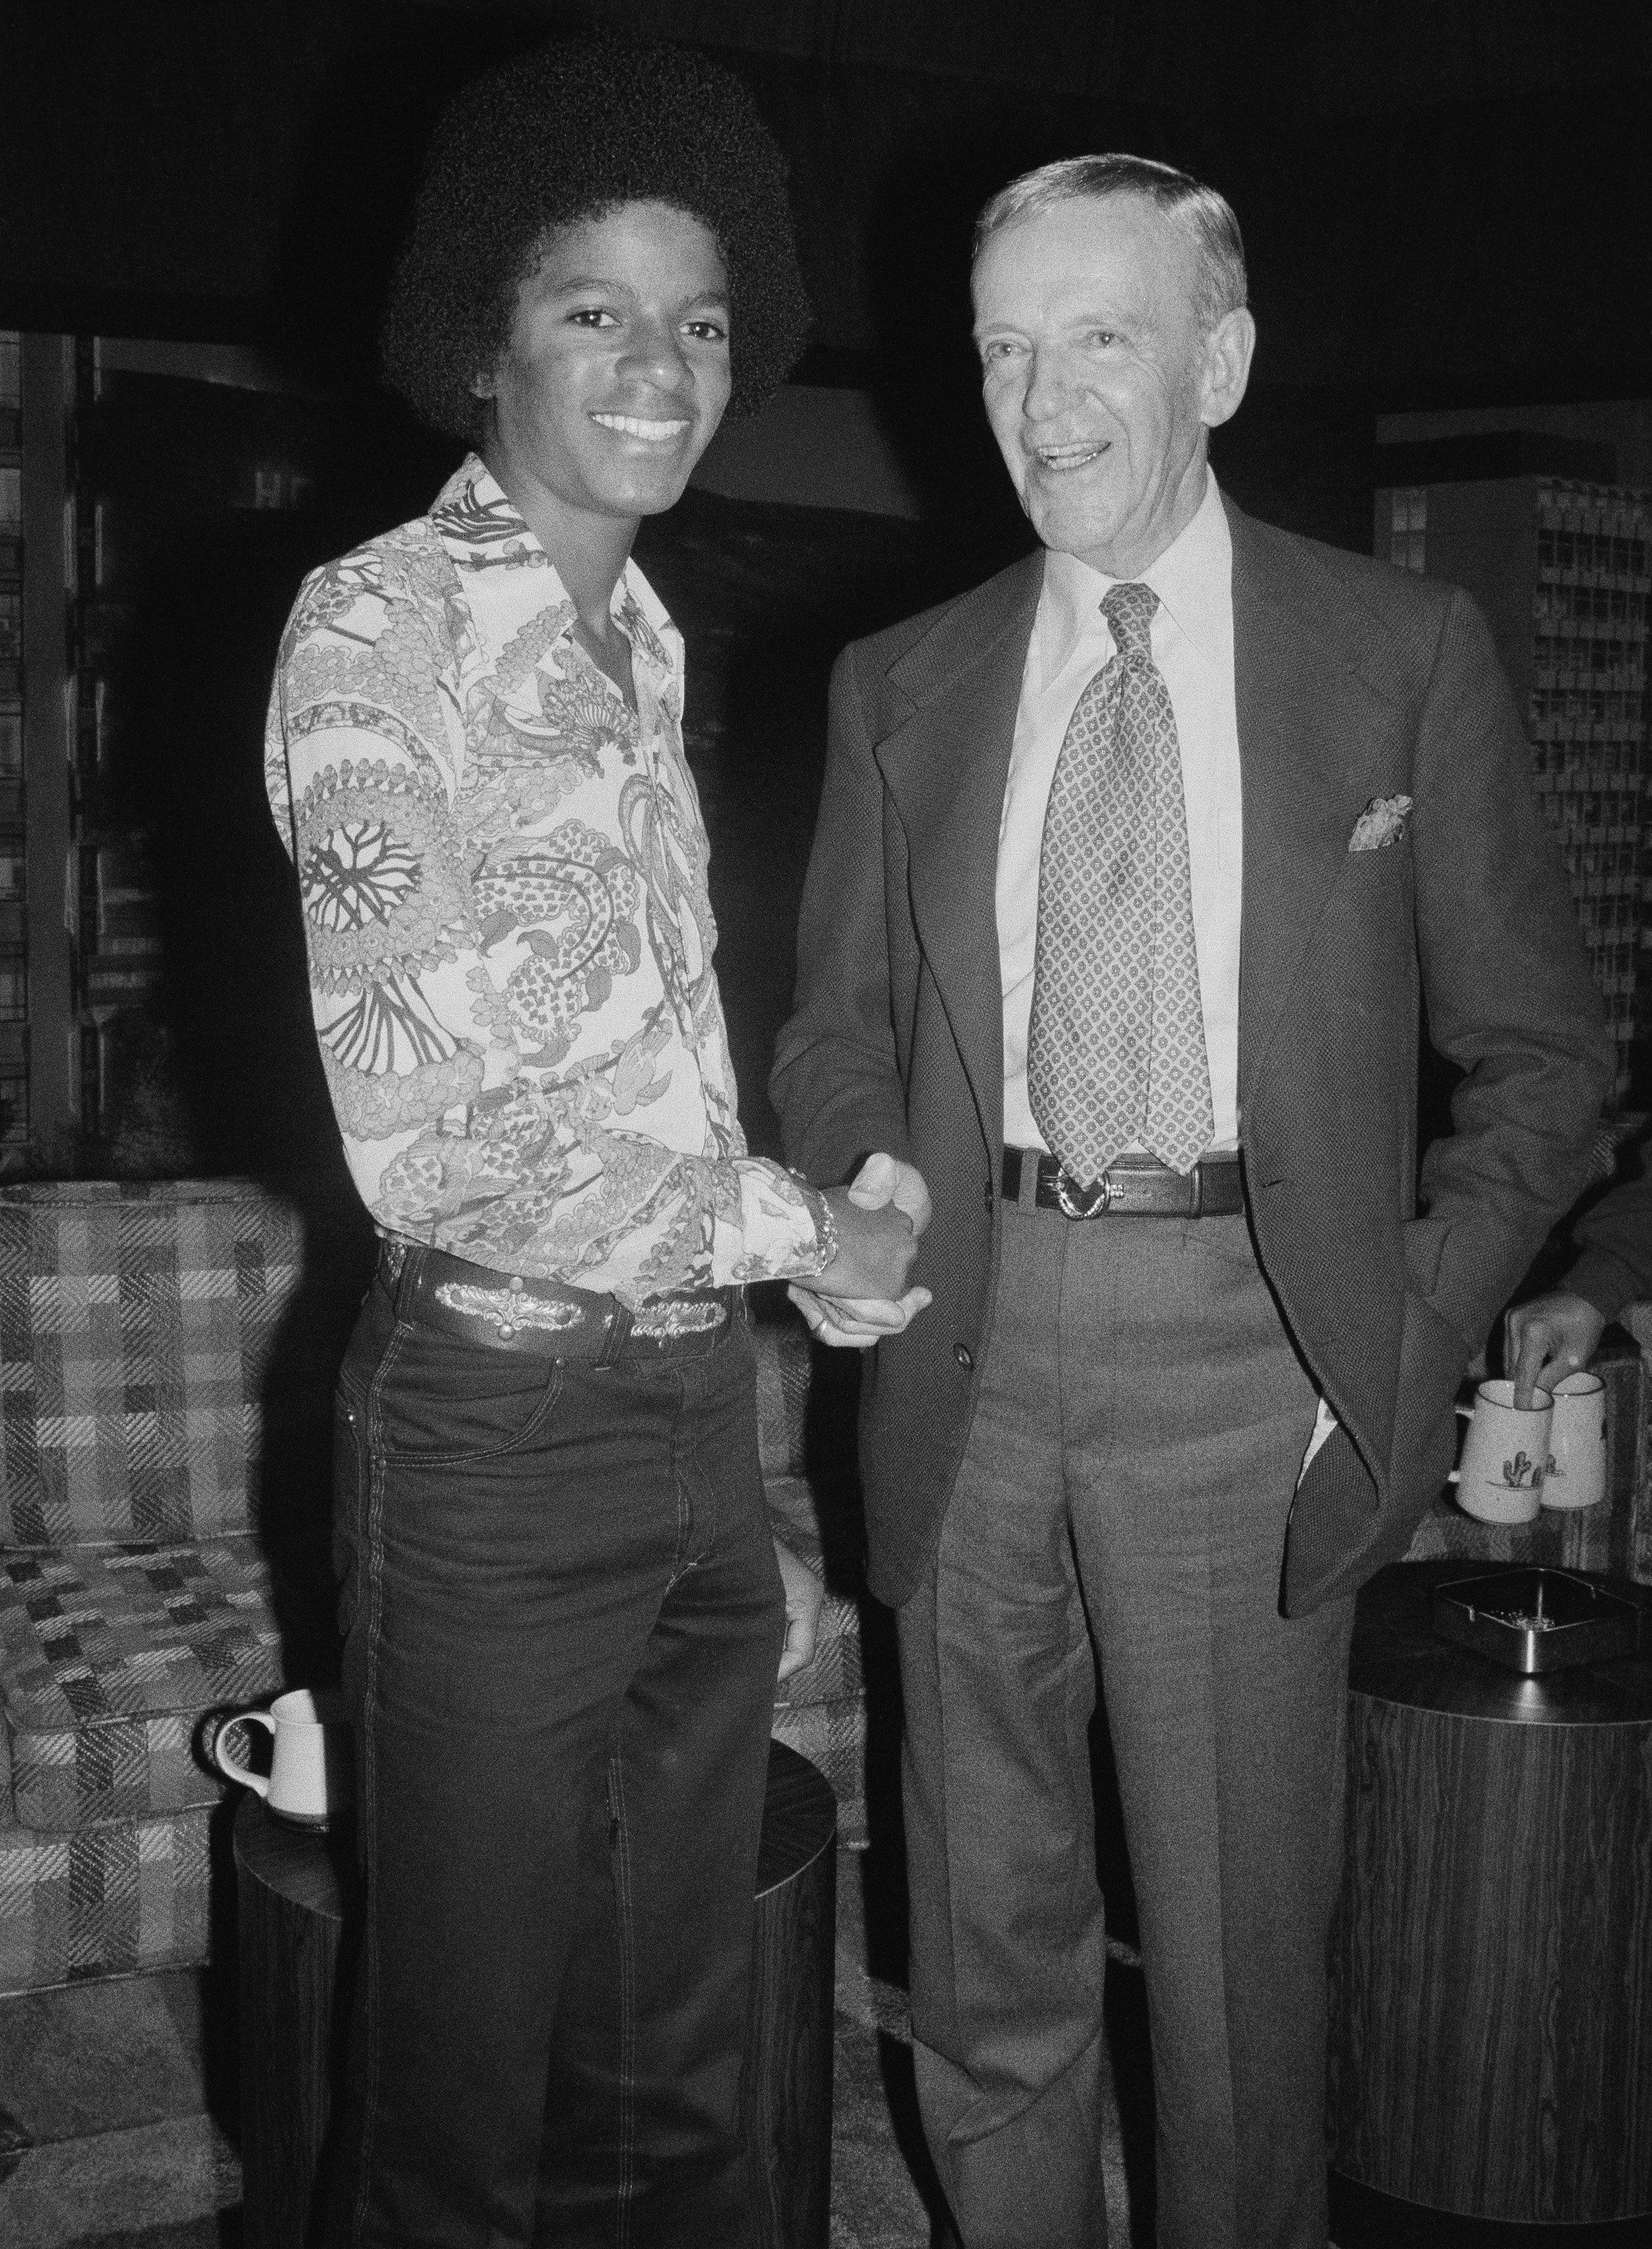 Michael Jackson and Fred Astaire   Michael jackson, Fred astaire, Jackson